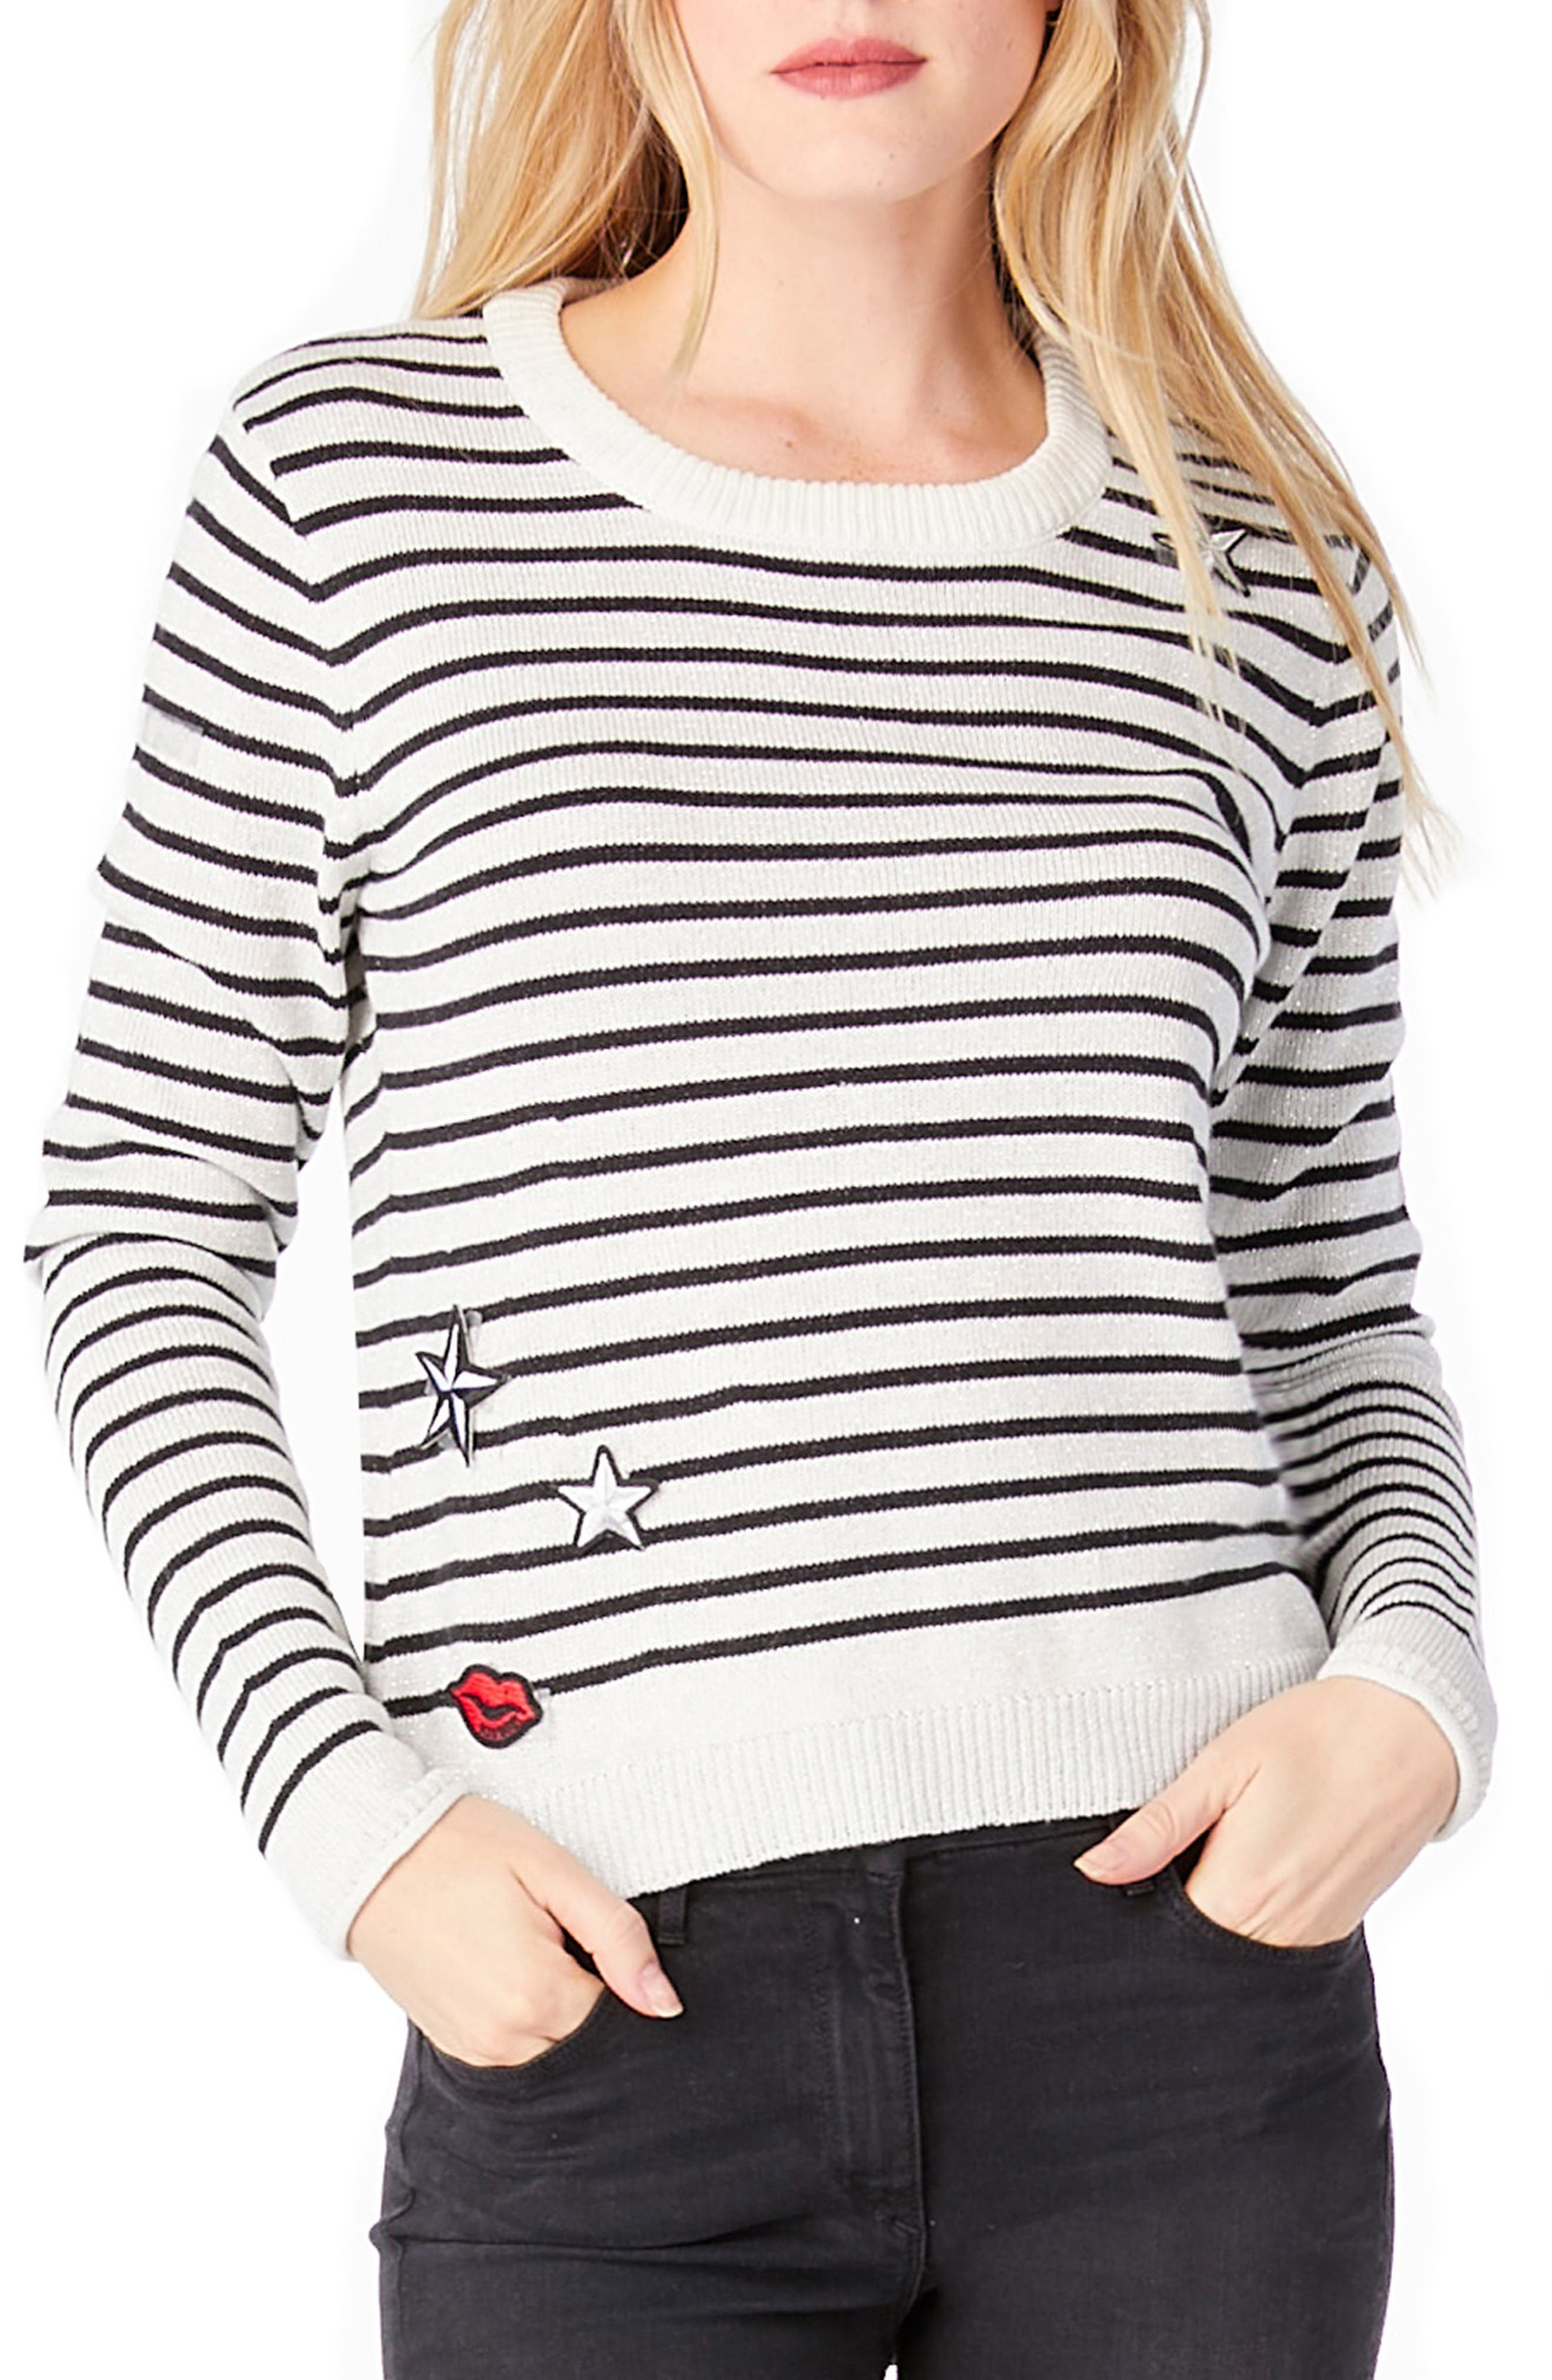 Stripe Patch Crewneck Sweater,                             Main thumbnail 1, color,                             White/ Black